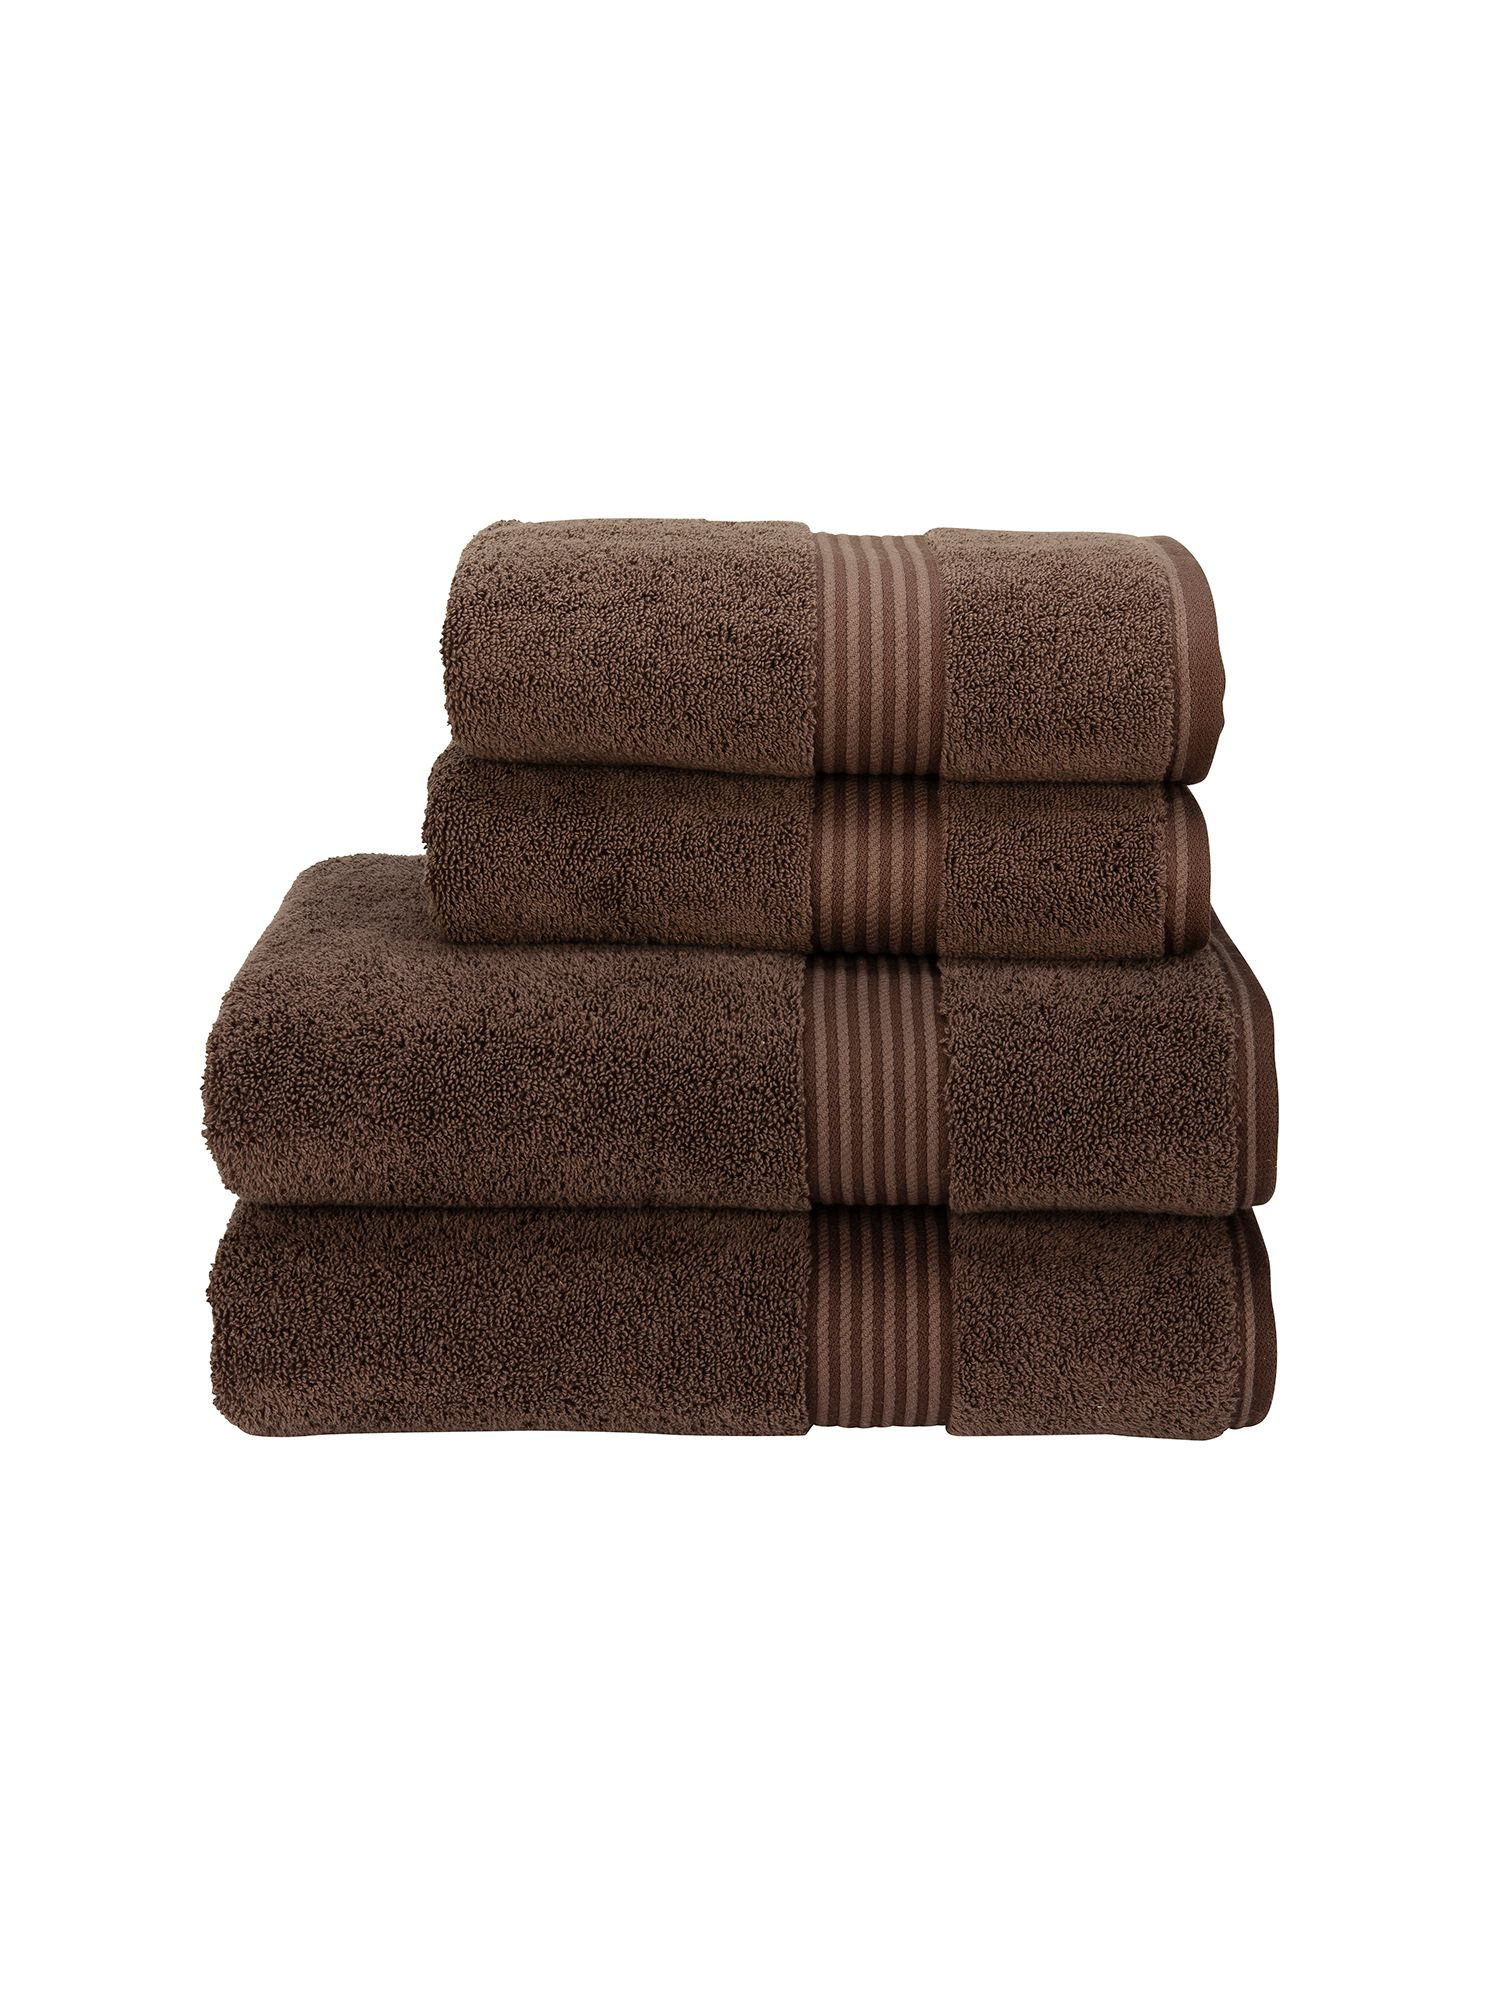 Supreme hygro towels cocoa